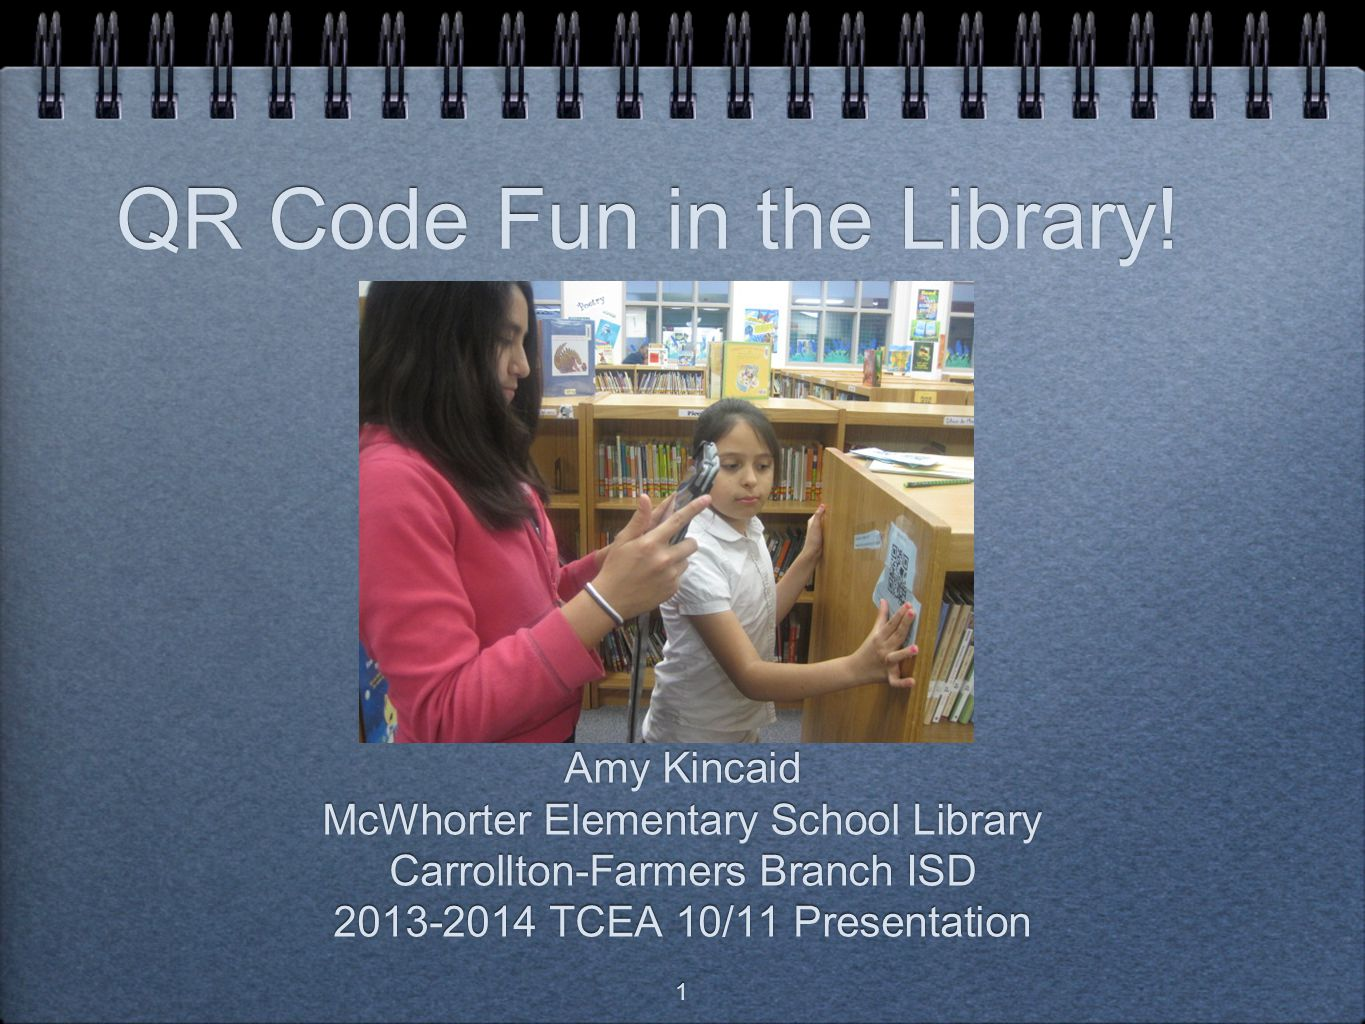 QR Code Fun in the Library!